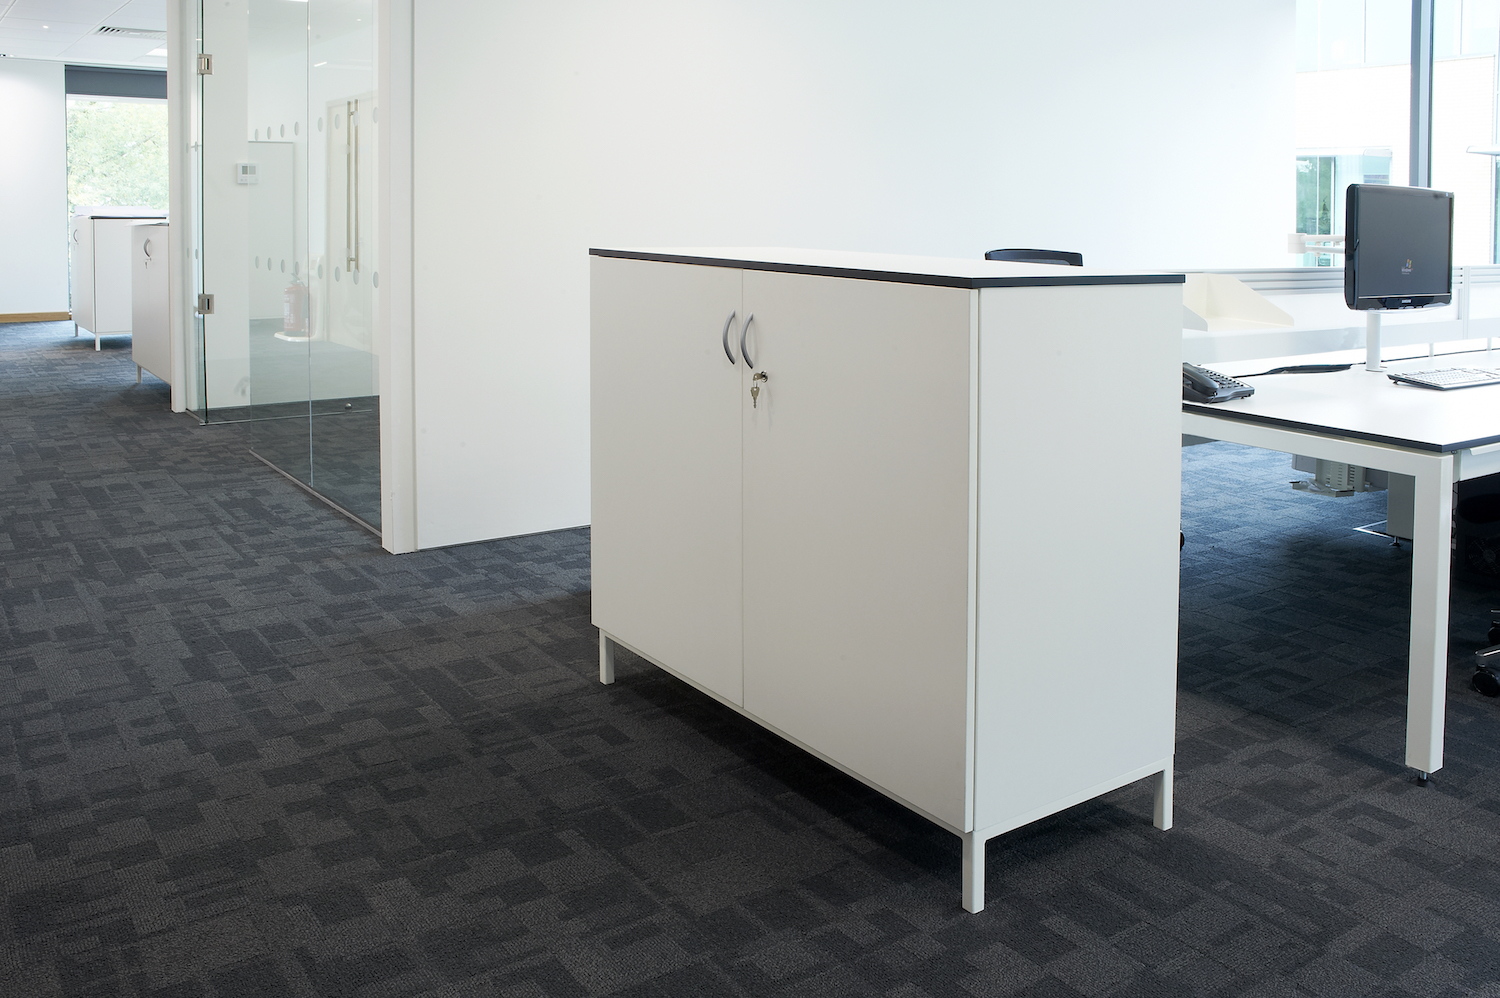 Under lit raised storage units in white mfc with black contrast edging